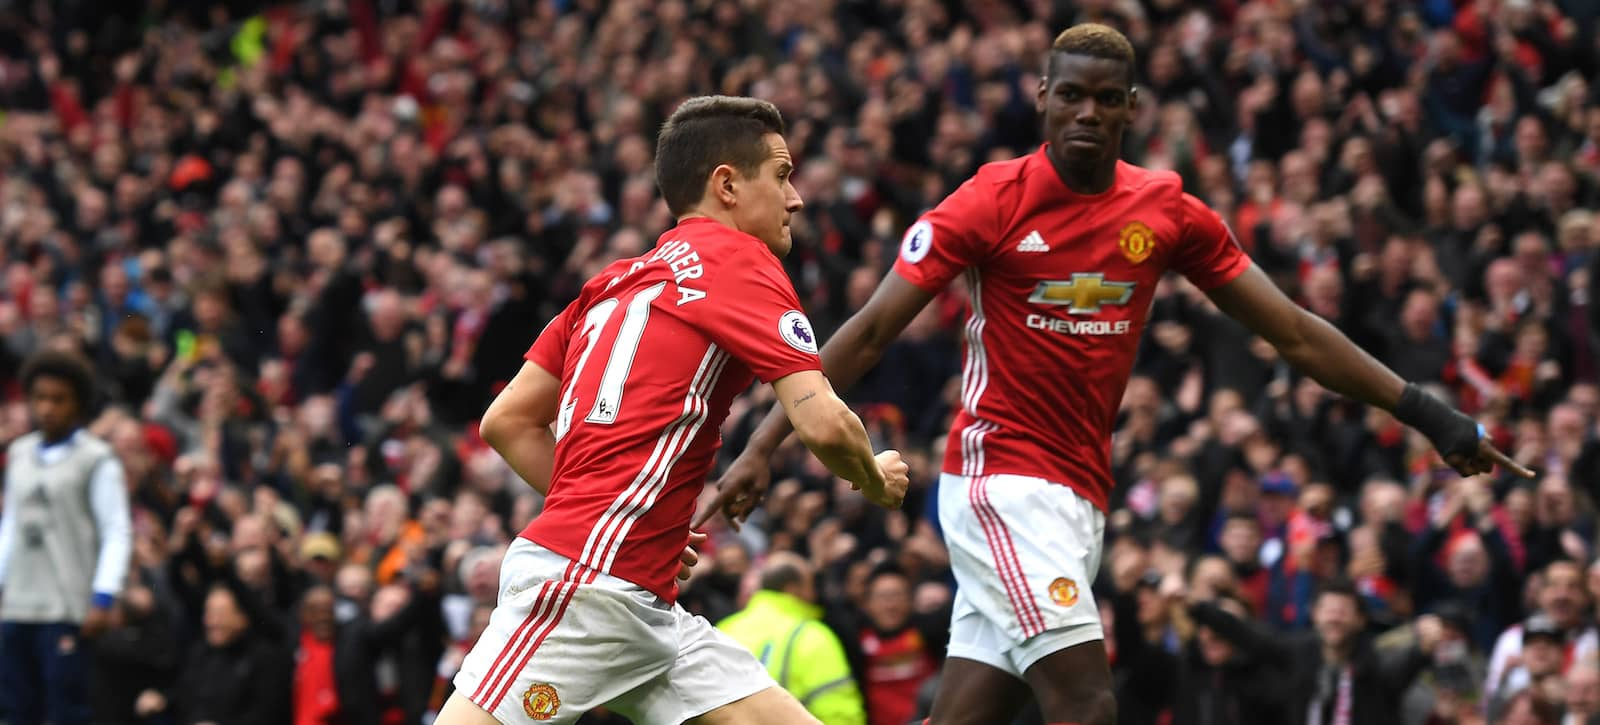 Gary Neville: Ander Herrera has proven me wrong at Manchester United